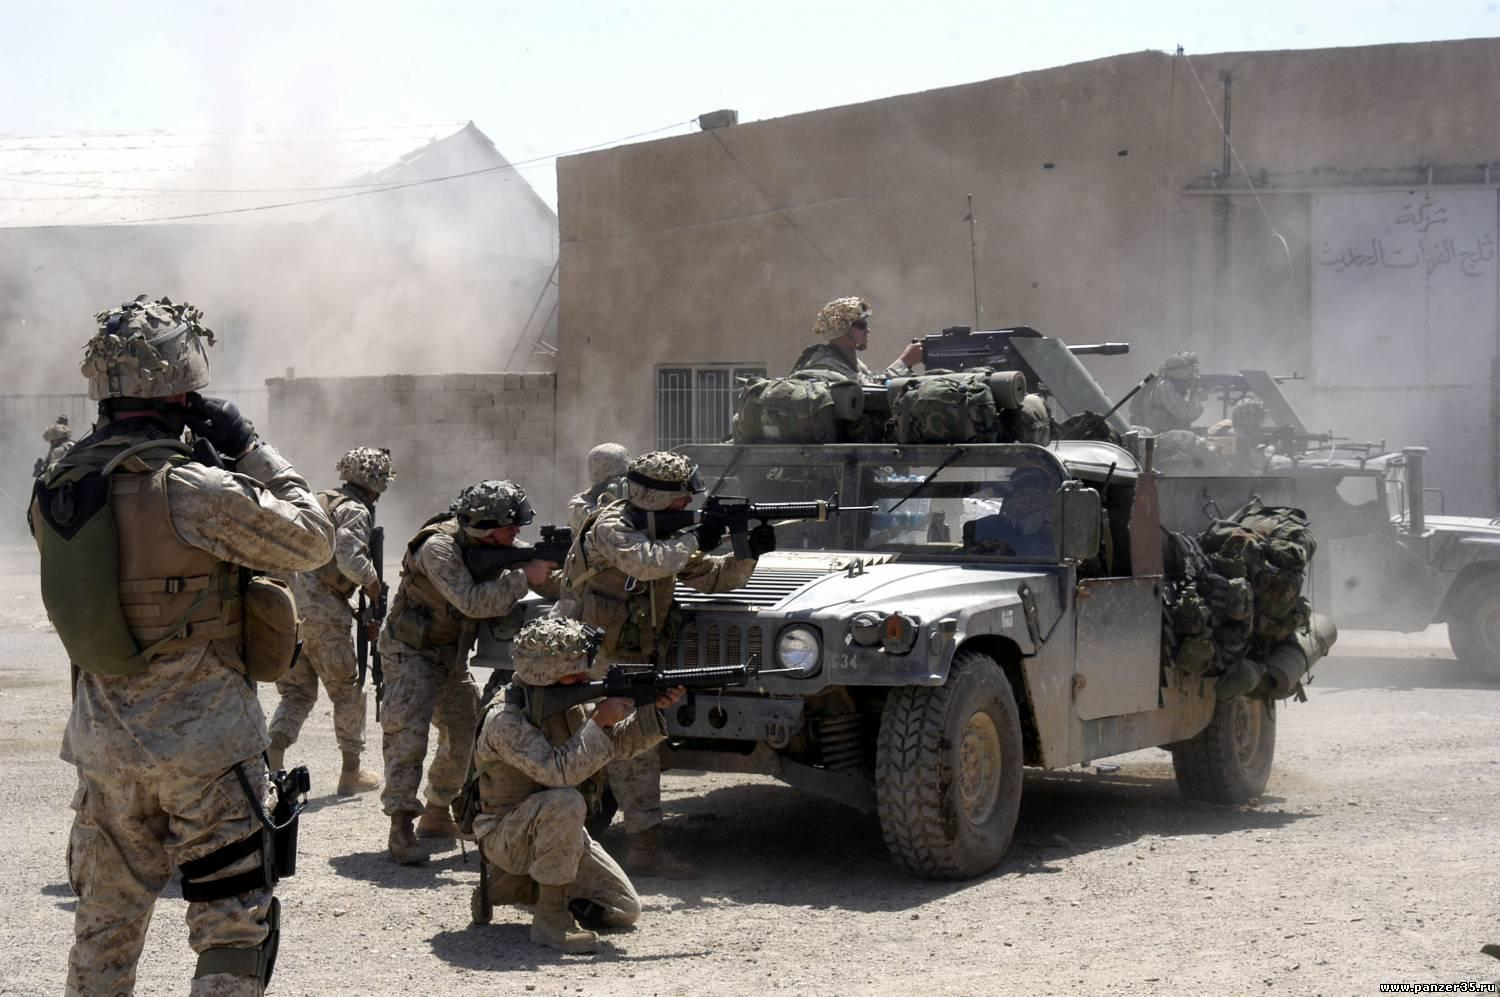 C:UsersWorkDesktopArmy BasesMarineCamp Baharia Marine Corps Base in Fallujah, Iraq1-5_Marines_in_Fallujah_07_April_204.jpg